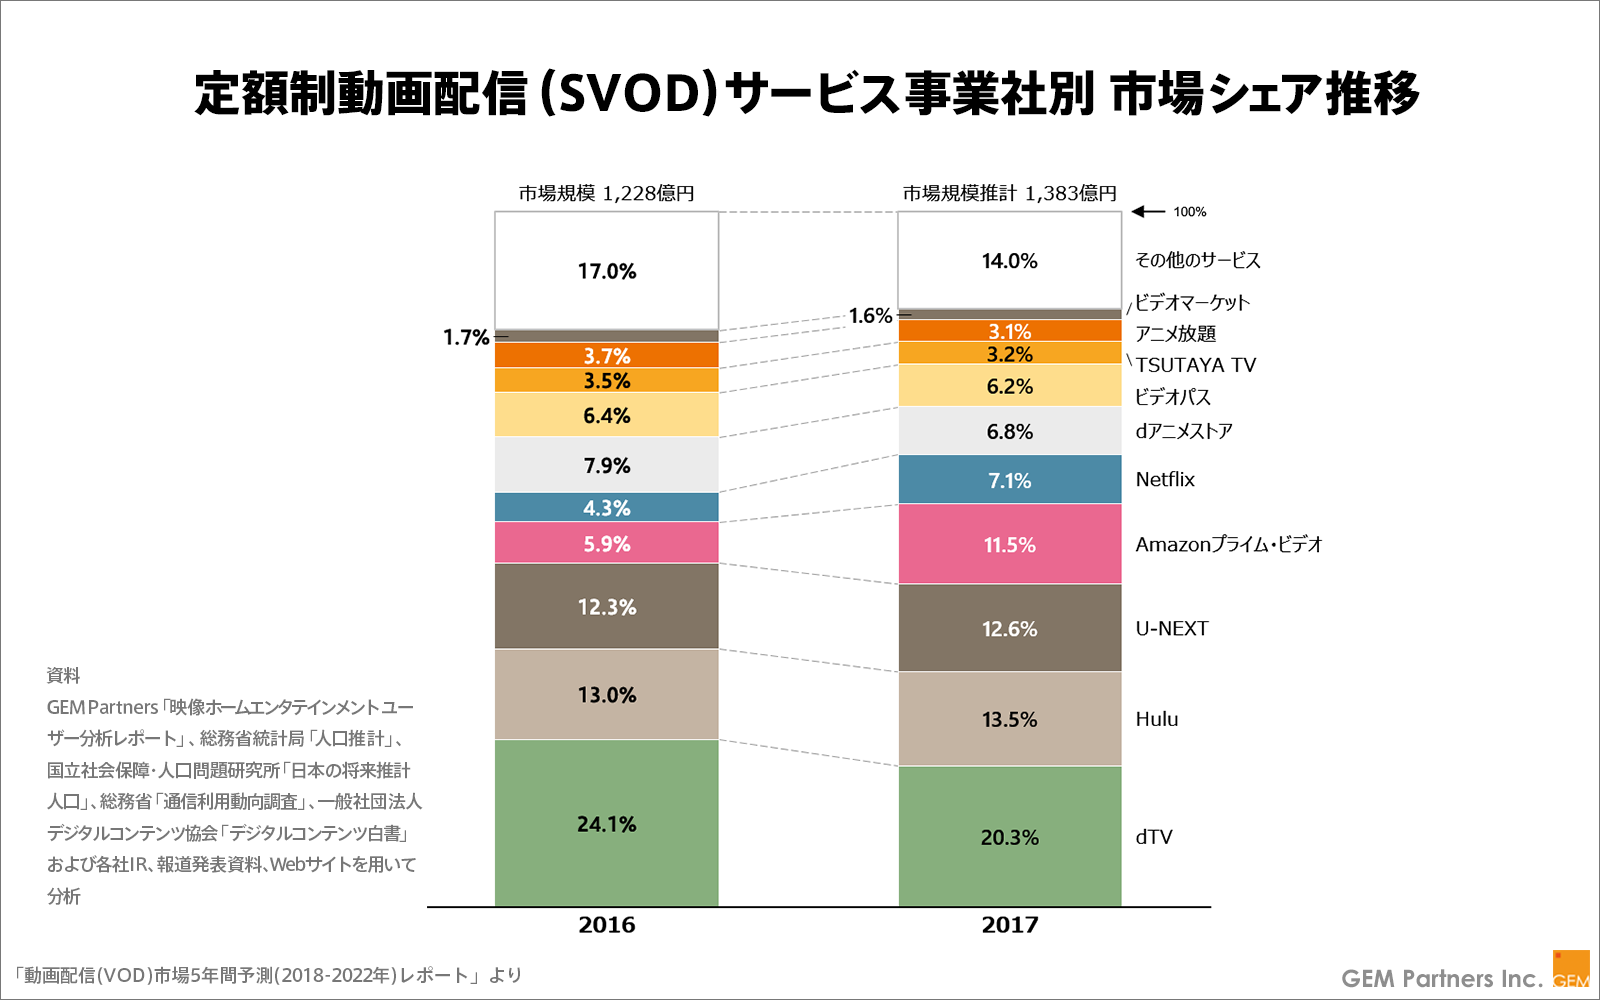 vodシェア推移グラフ